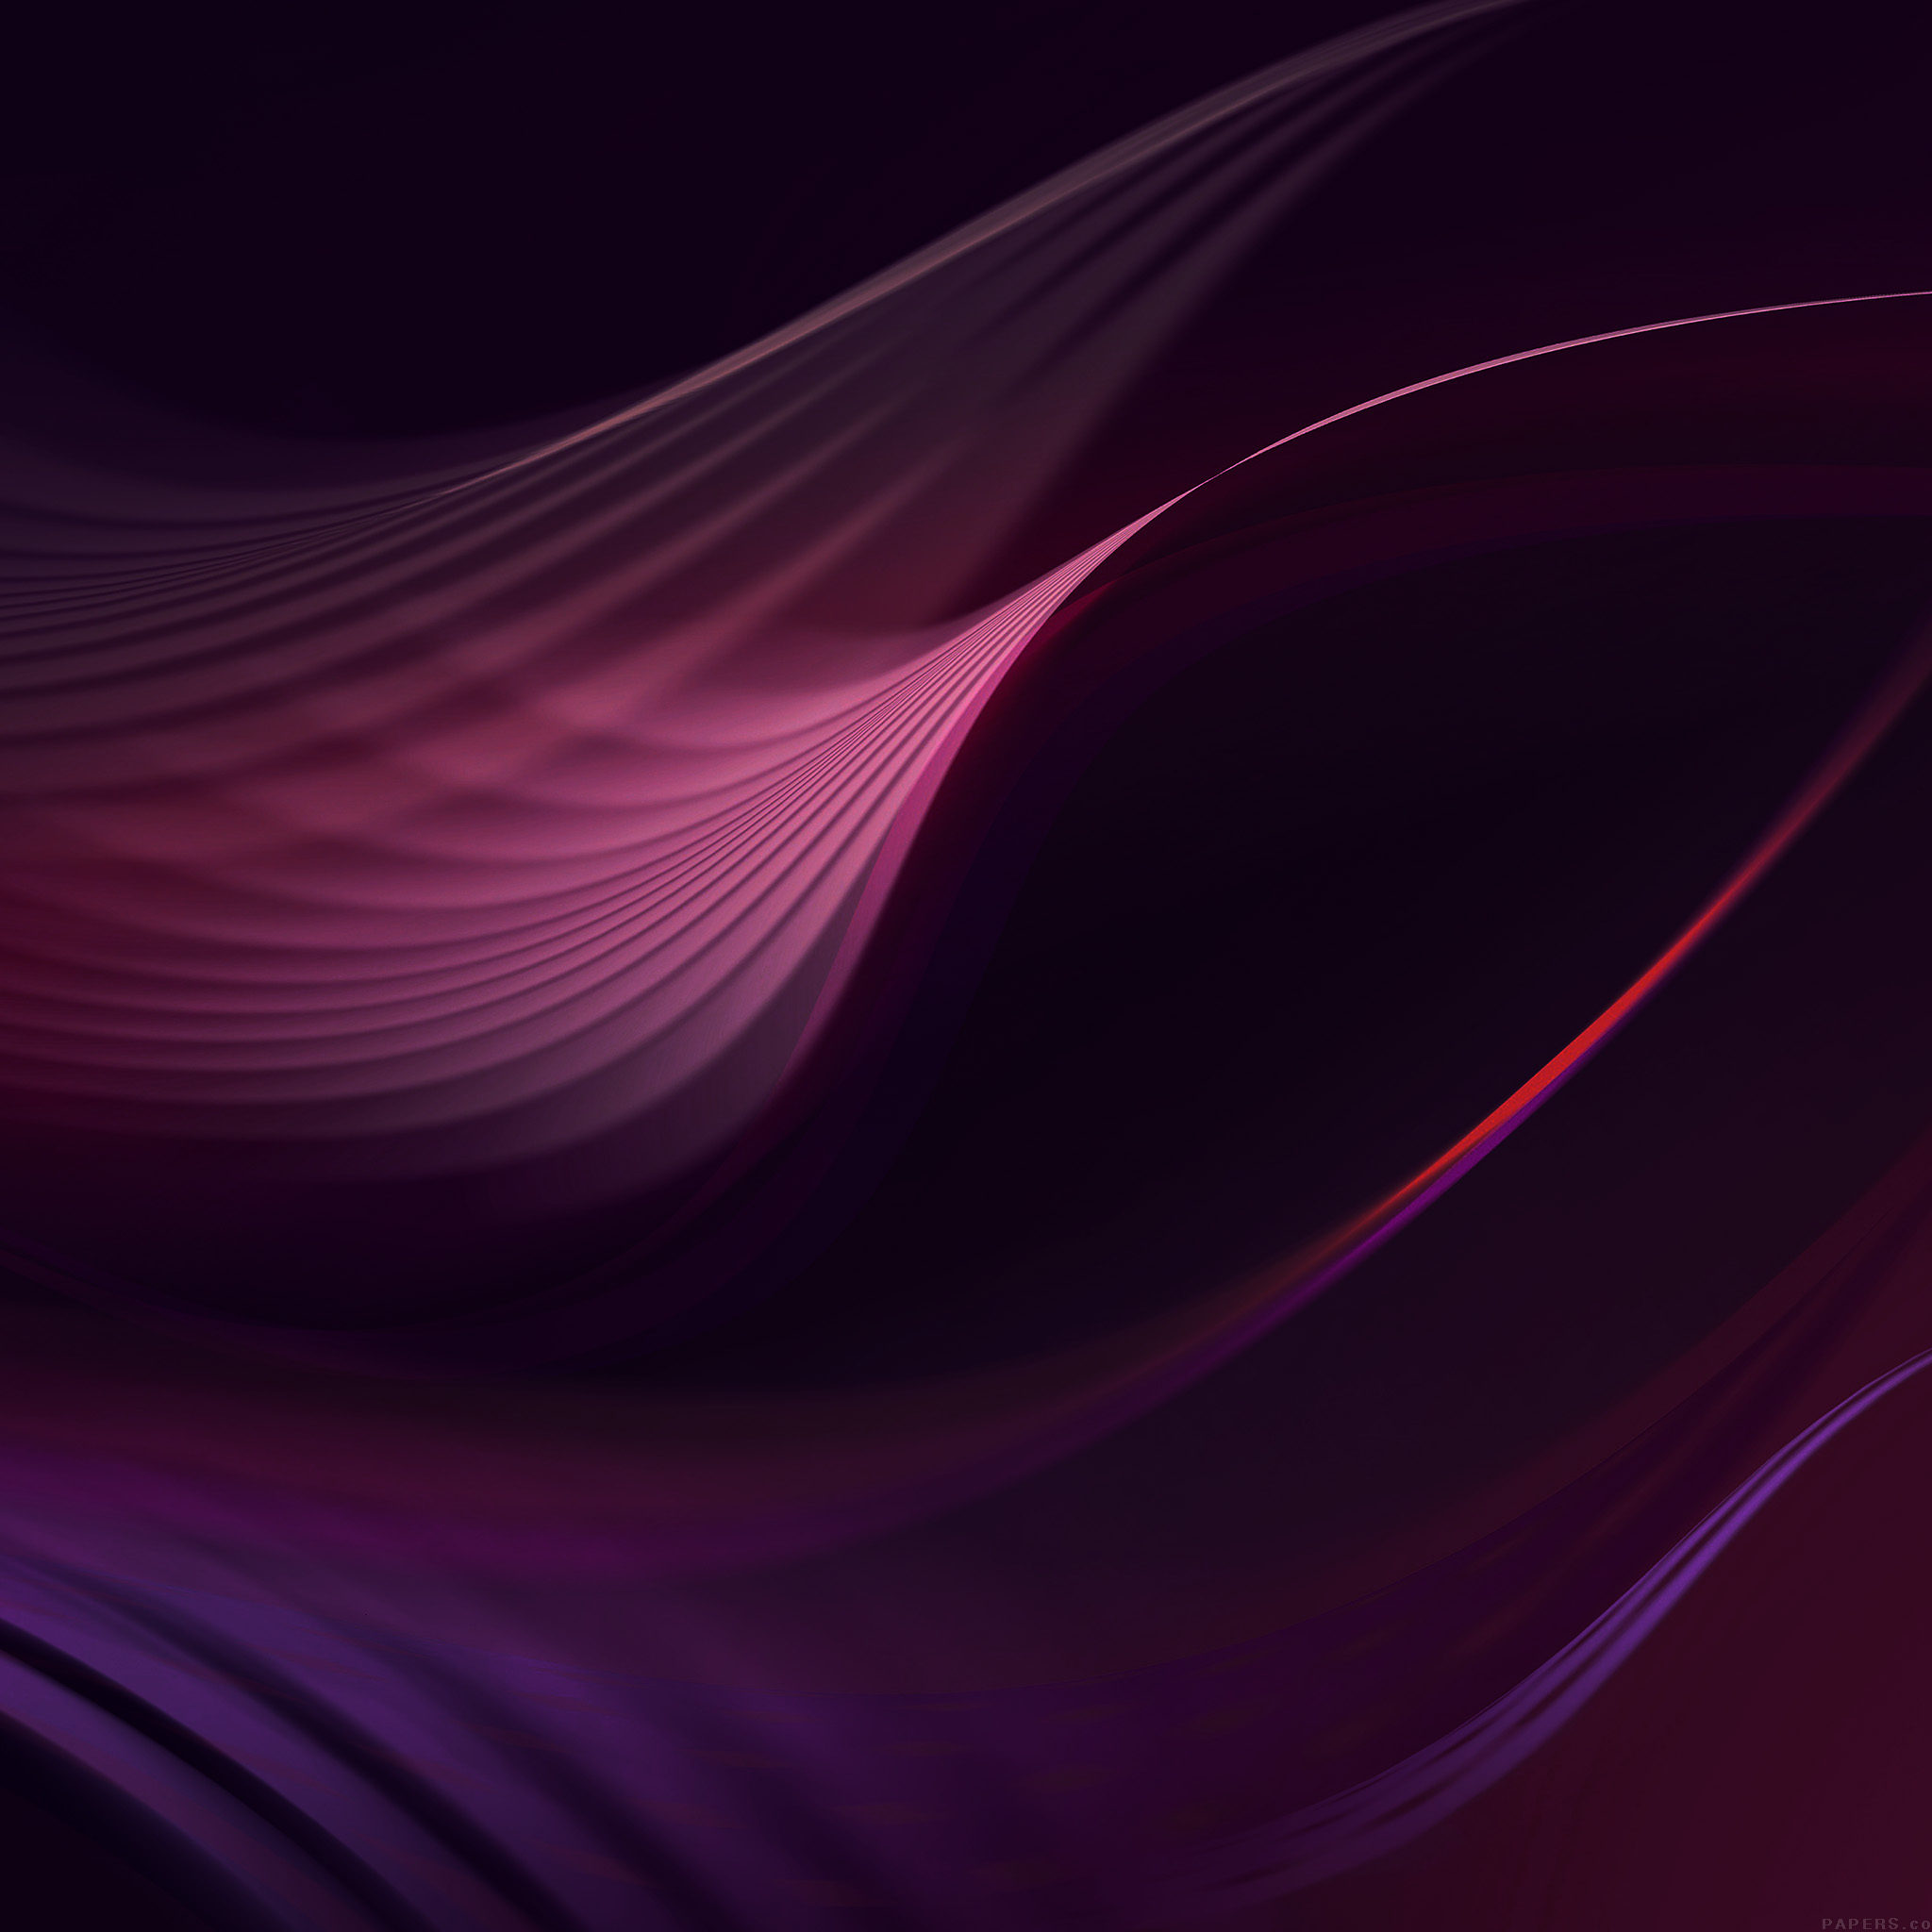 40 Colorful and Abstract iPad Wallpapers | Webdesigner Depot